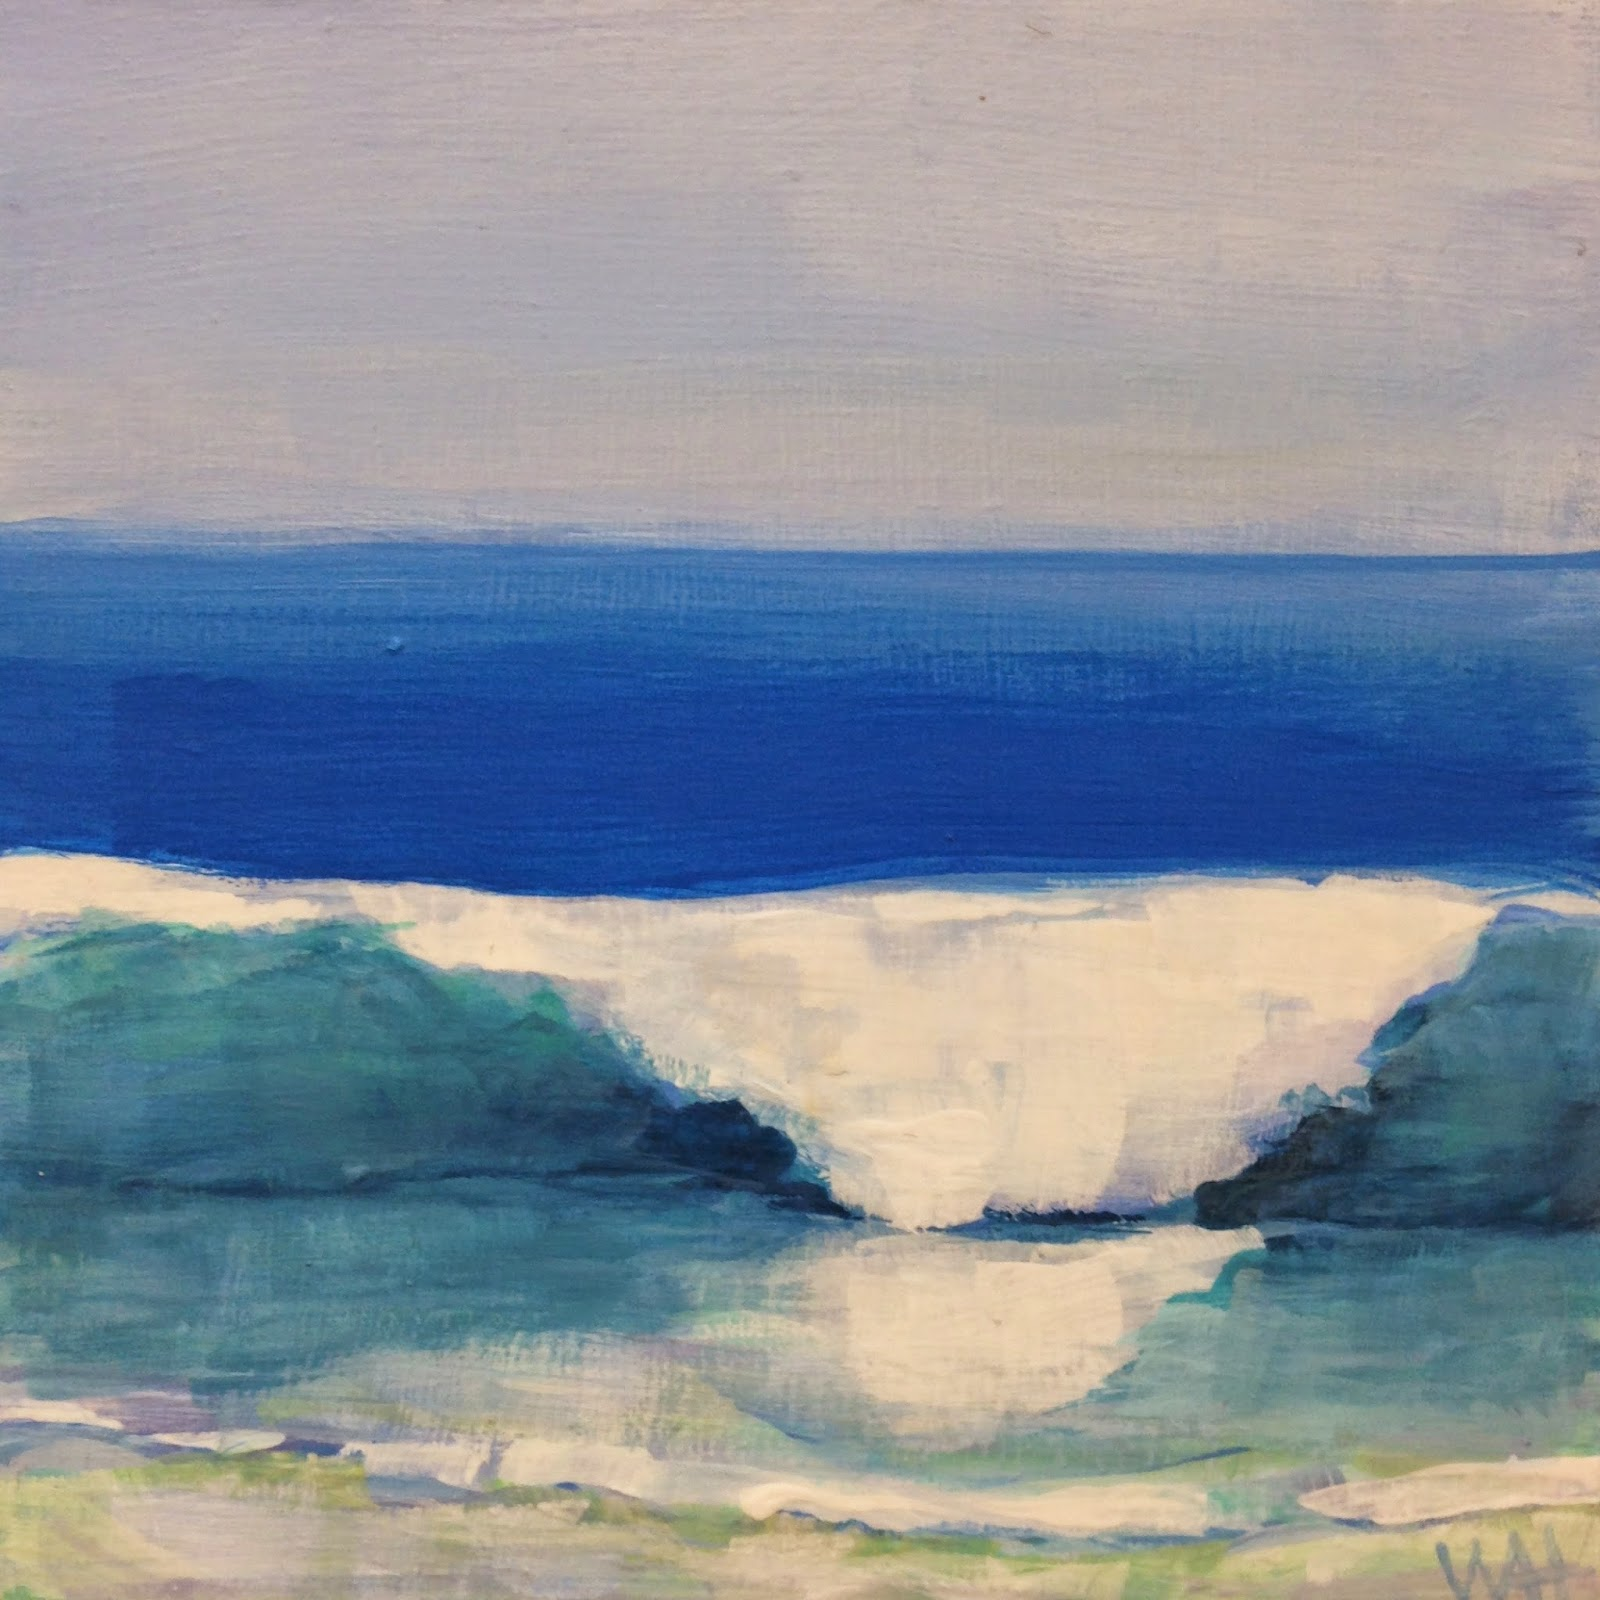 square acrylic painting of an ocean wave